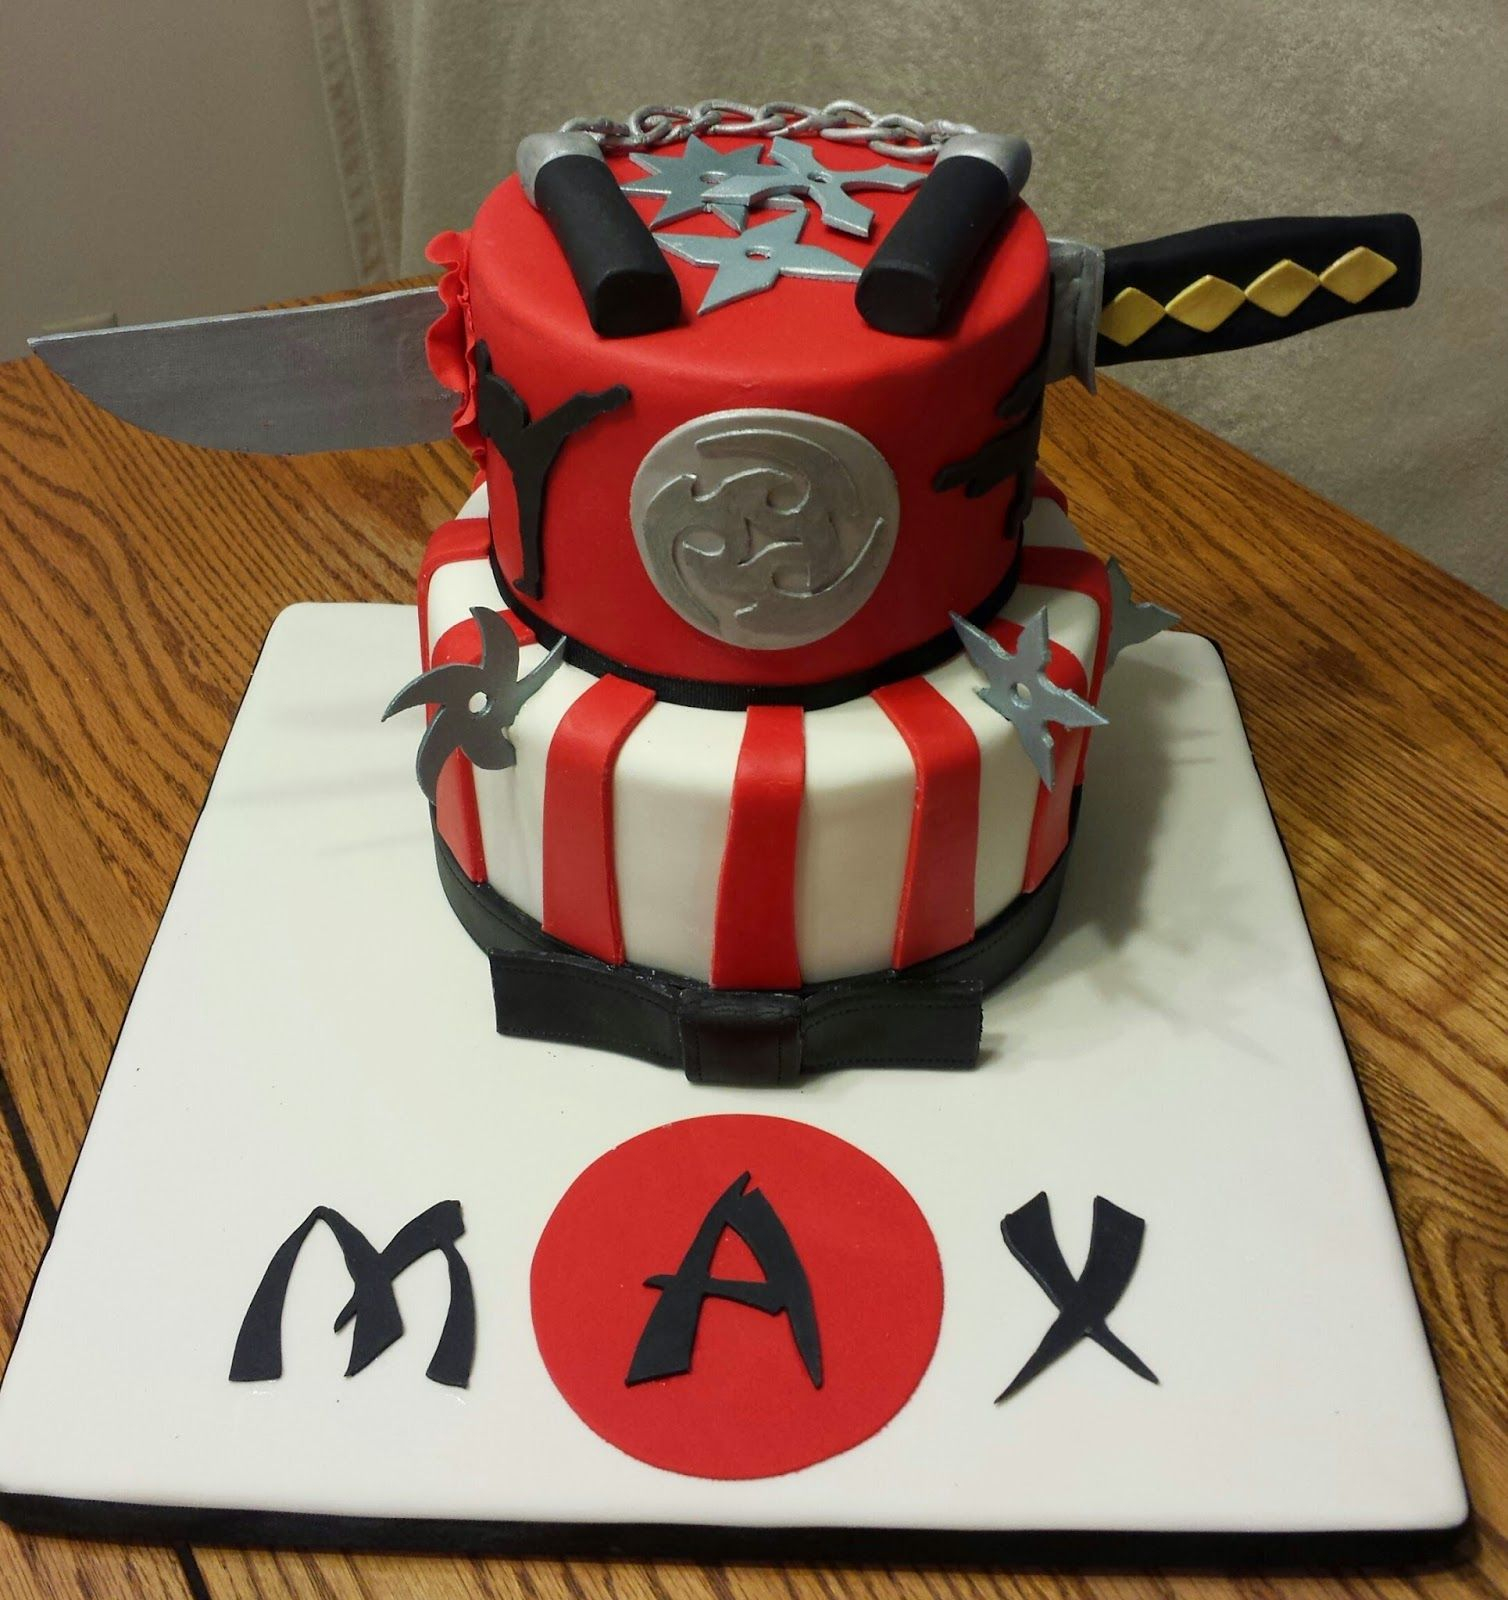 23+ Excellent Image of Ninja Birthday Cake